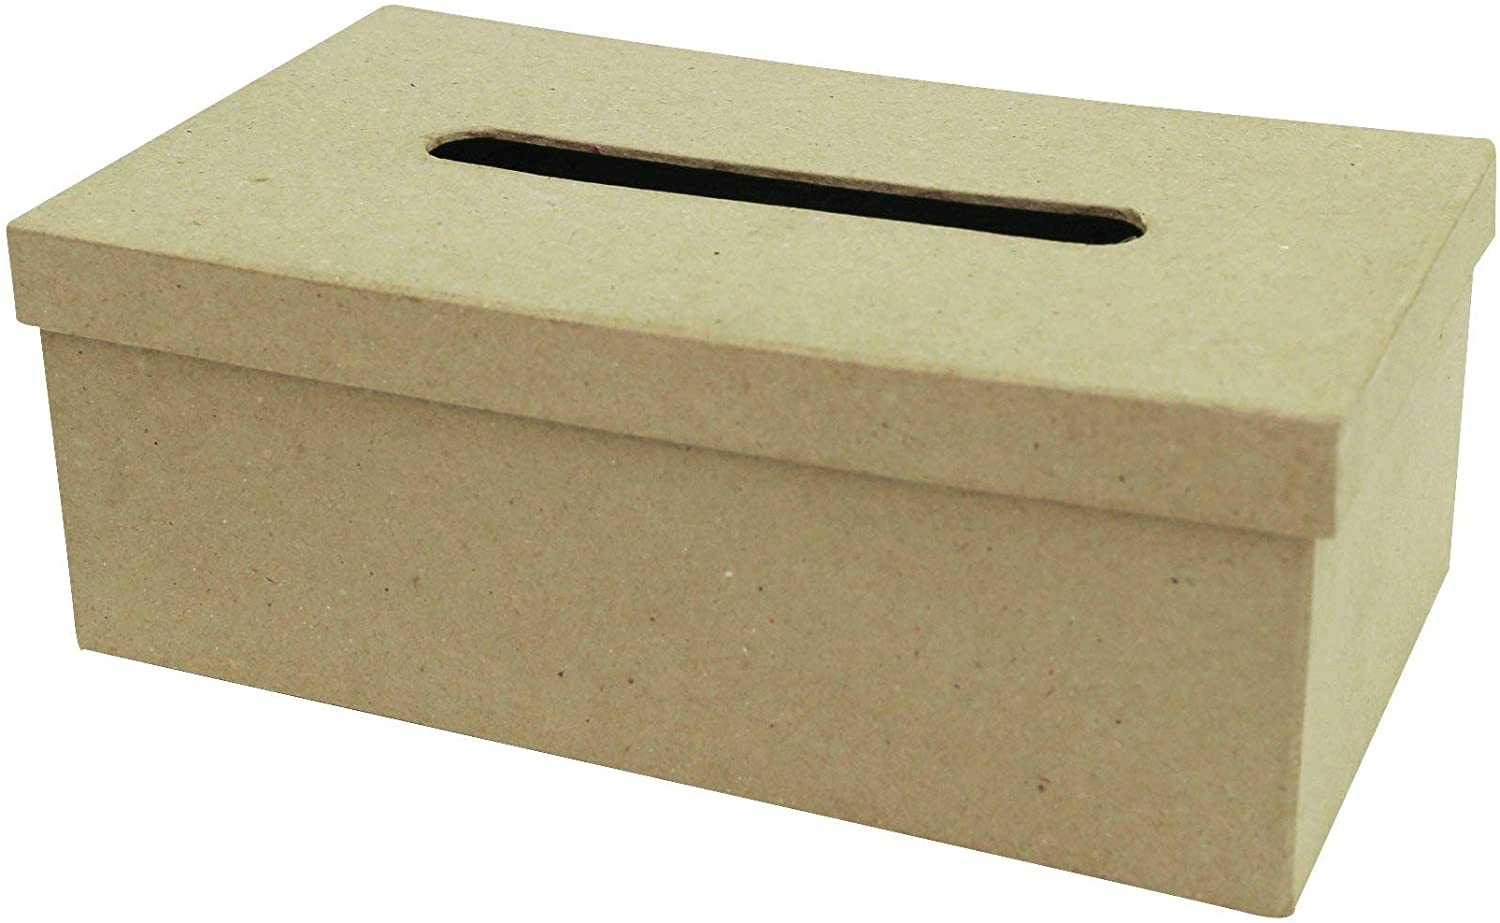 Exact Décopatch Mache Rectangle, 14x25x9cm-Brown Decopatch Tissue Box, AC657O Brown, 14x25x9cm